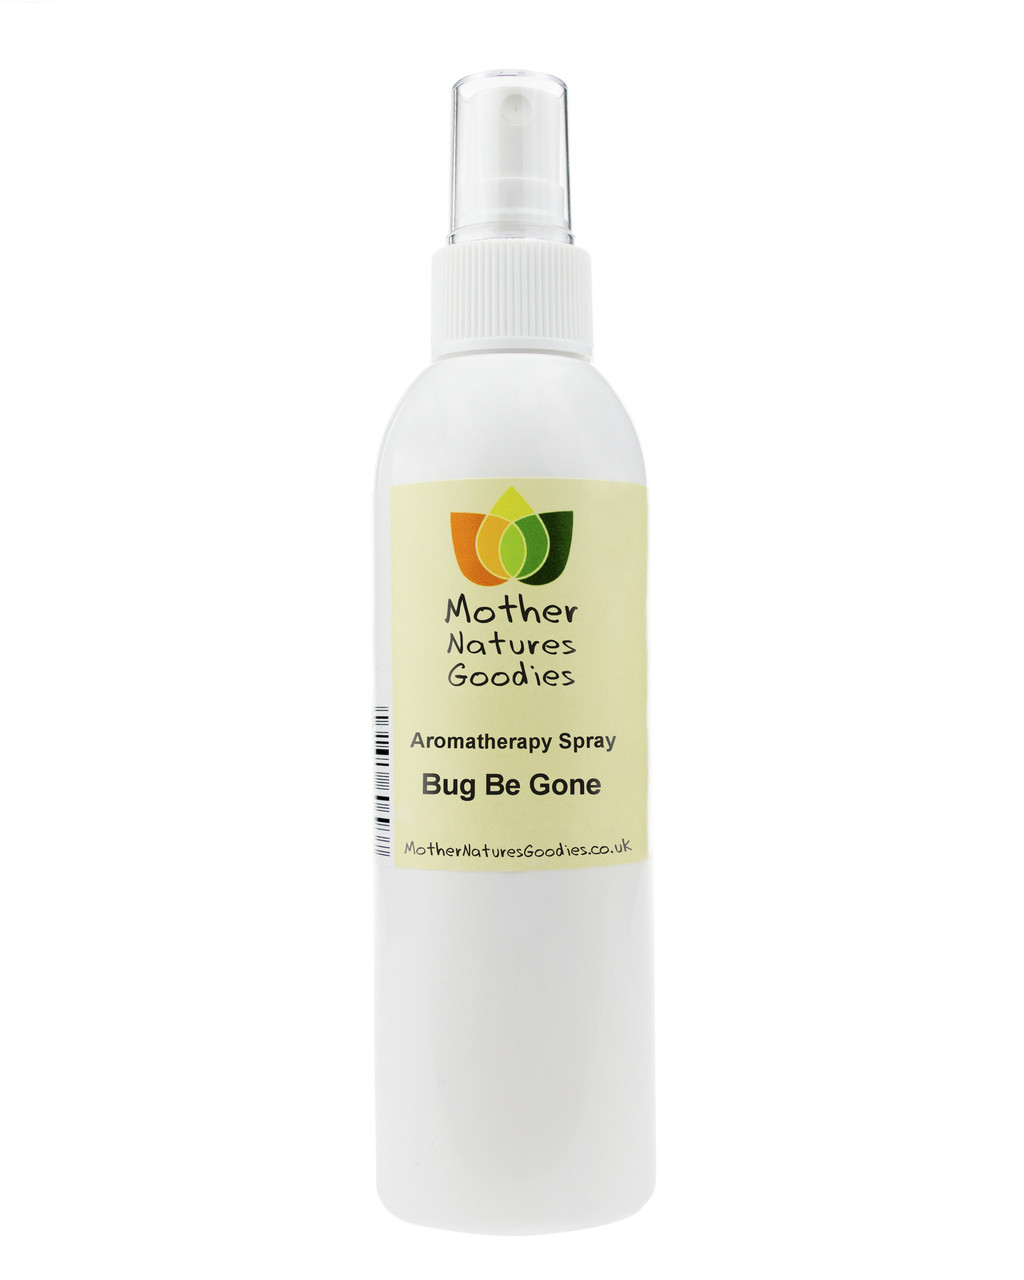 BUG BE GONE Aromatherapy Room & Body Spray (Natural Essential Oils) 200ml